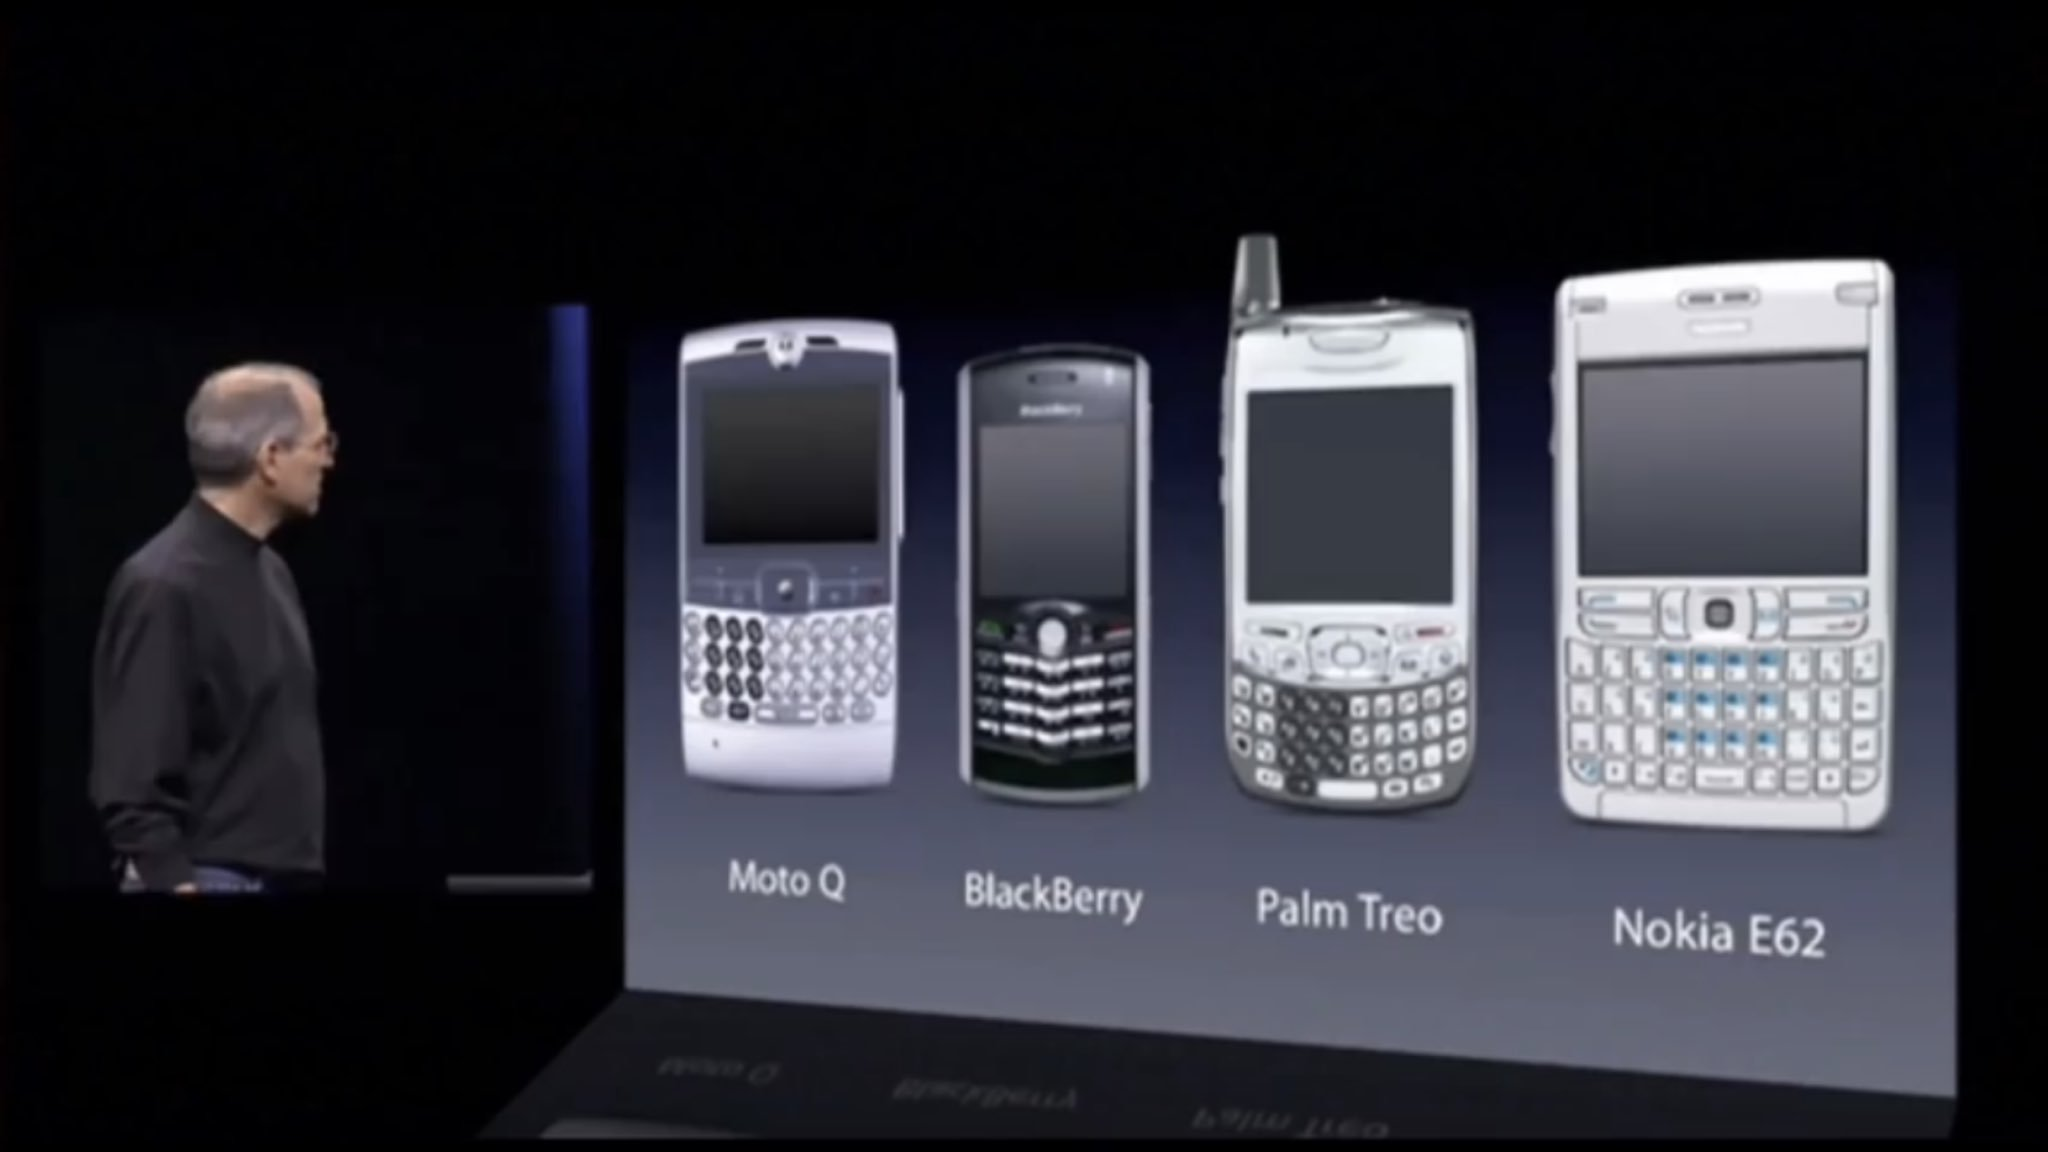 Apple did not invent the smartphone: A Eulogy for Windows phones